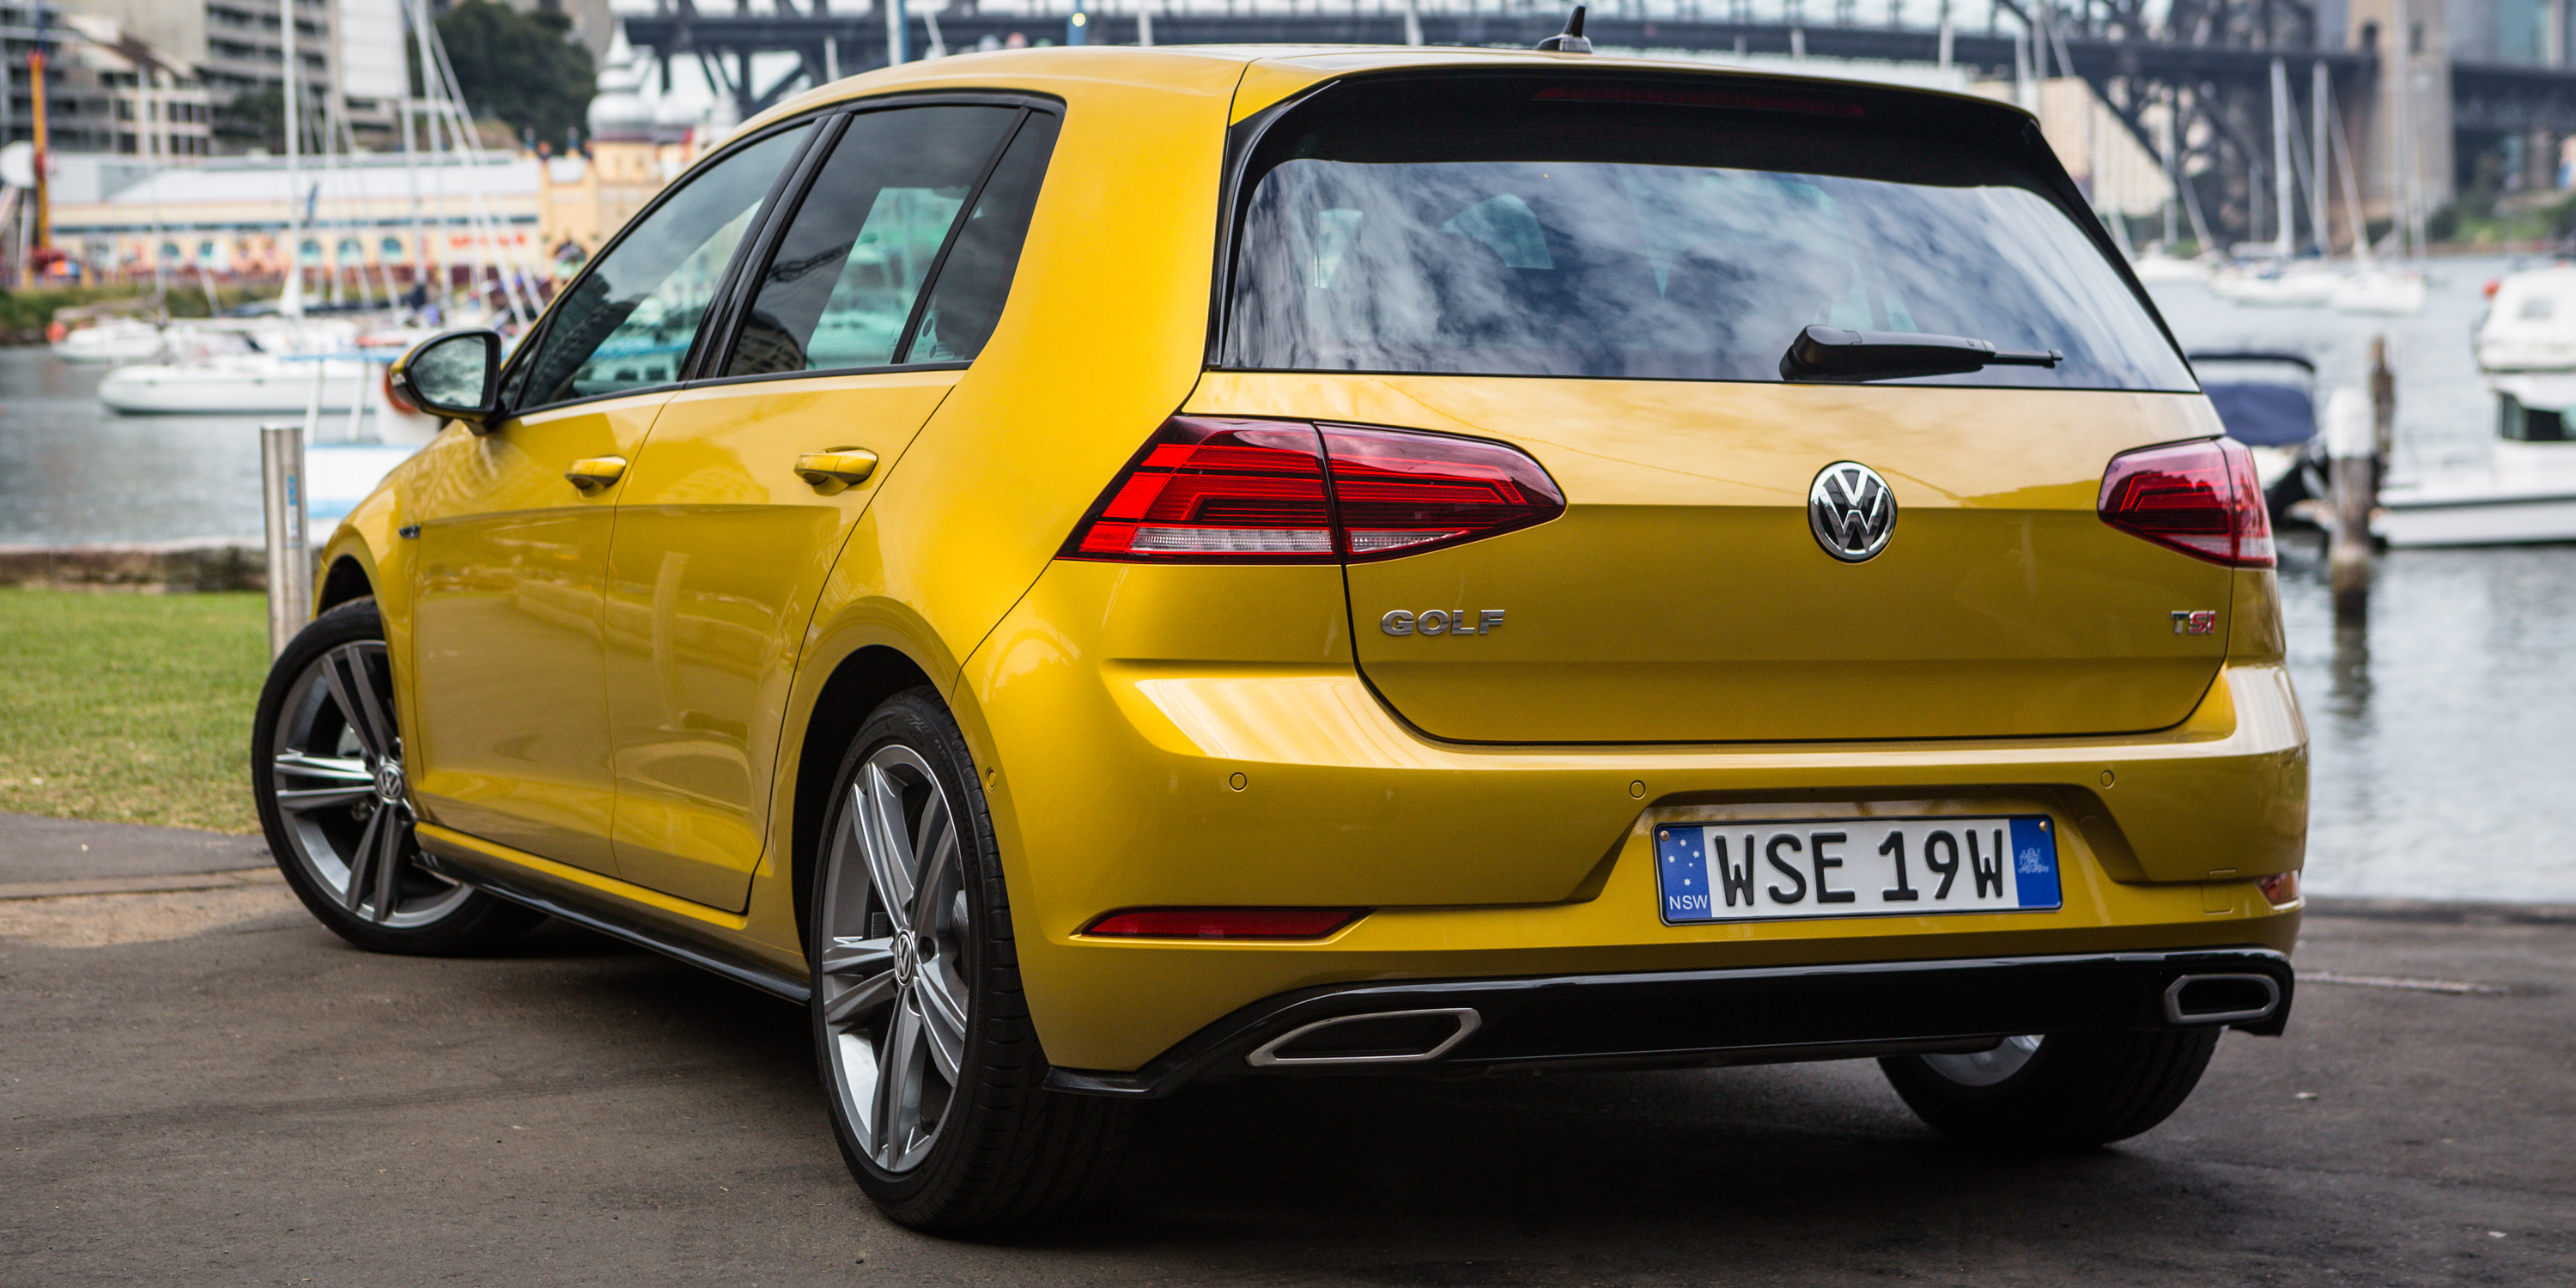 Volkswagen Golf photo 179315